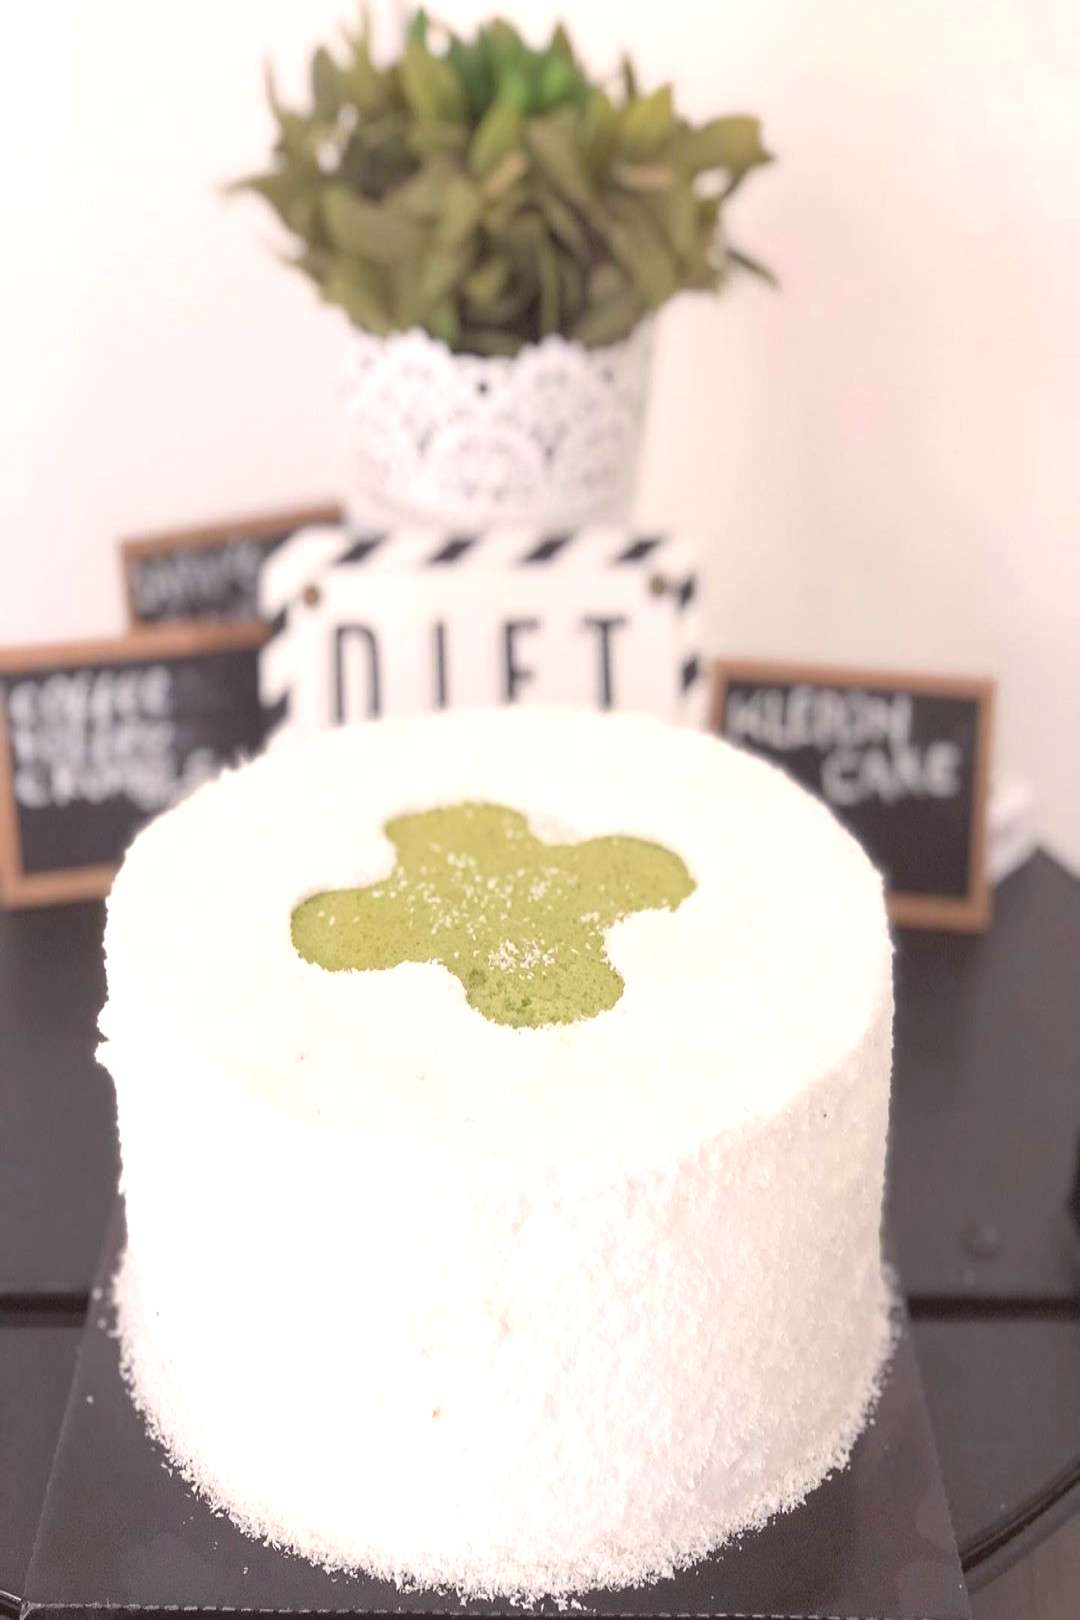 Klepon Cake Sweets for today *byMe* #yumm #traditionalcake #sweet